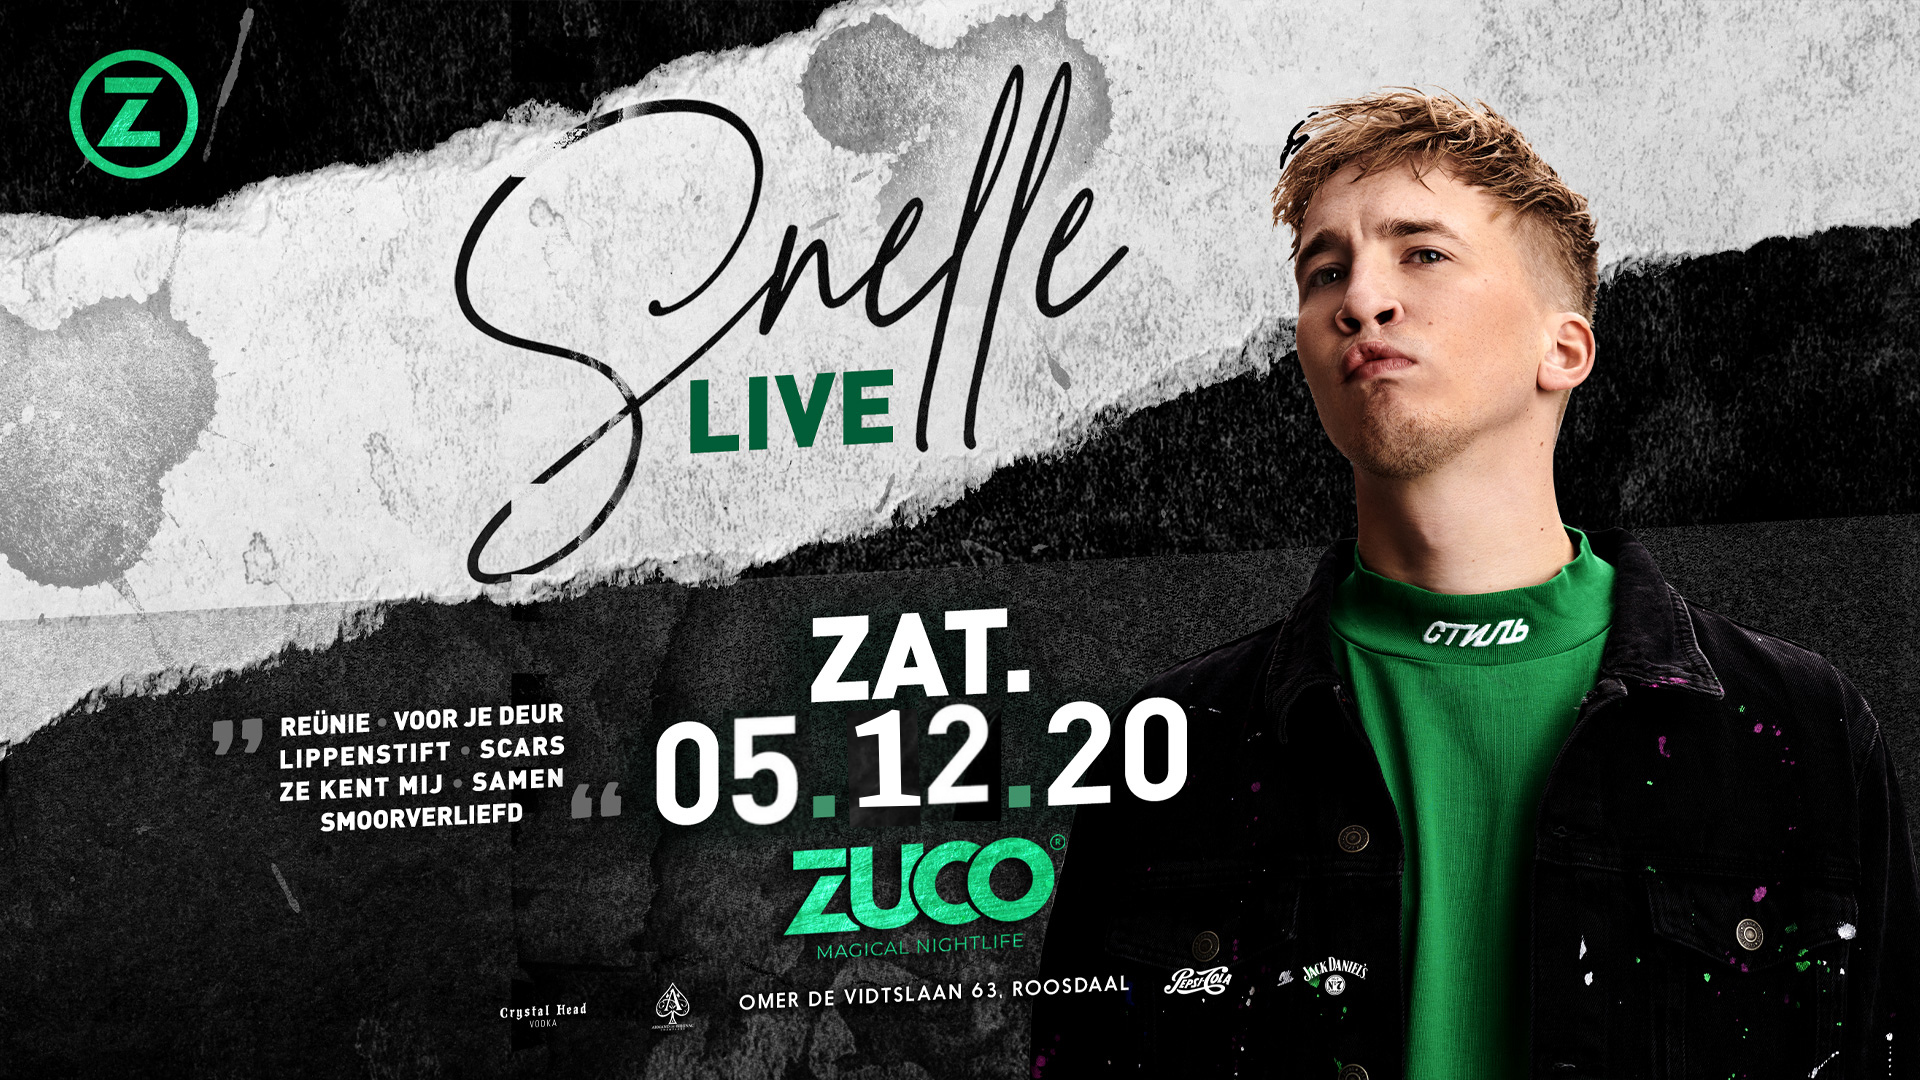 Snelle ft. ZUCO